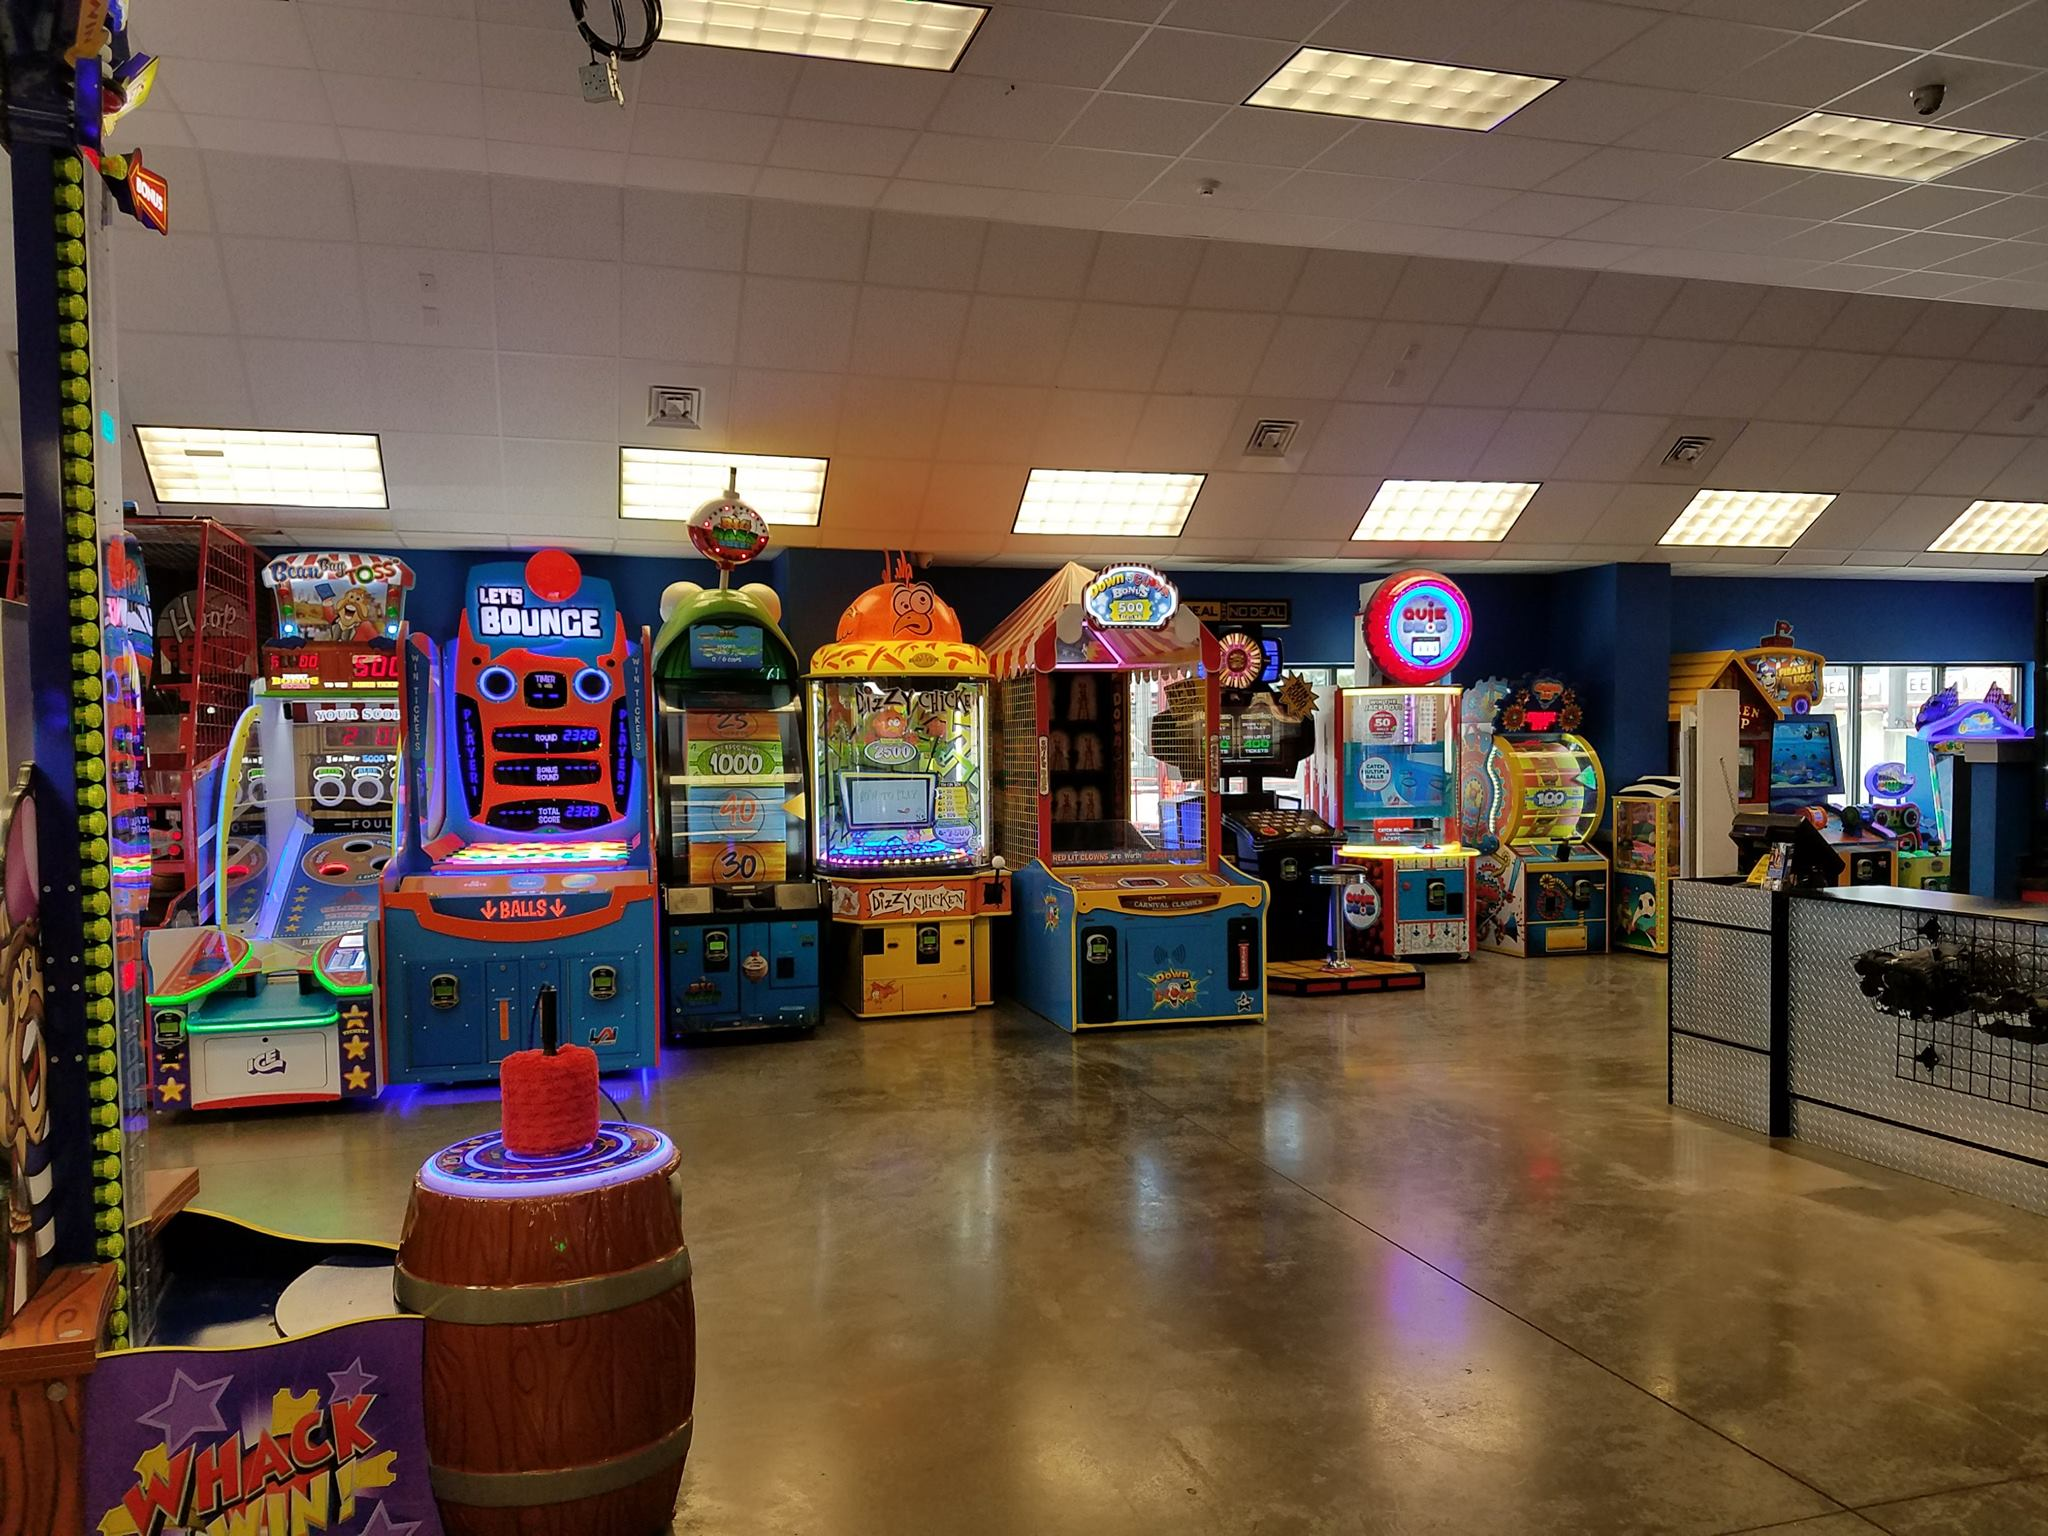 What kids doesn't love arcades? The Track Family Fun Parks are just what the kids want.